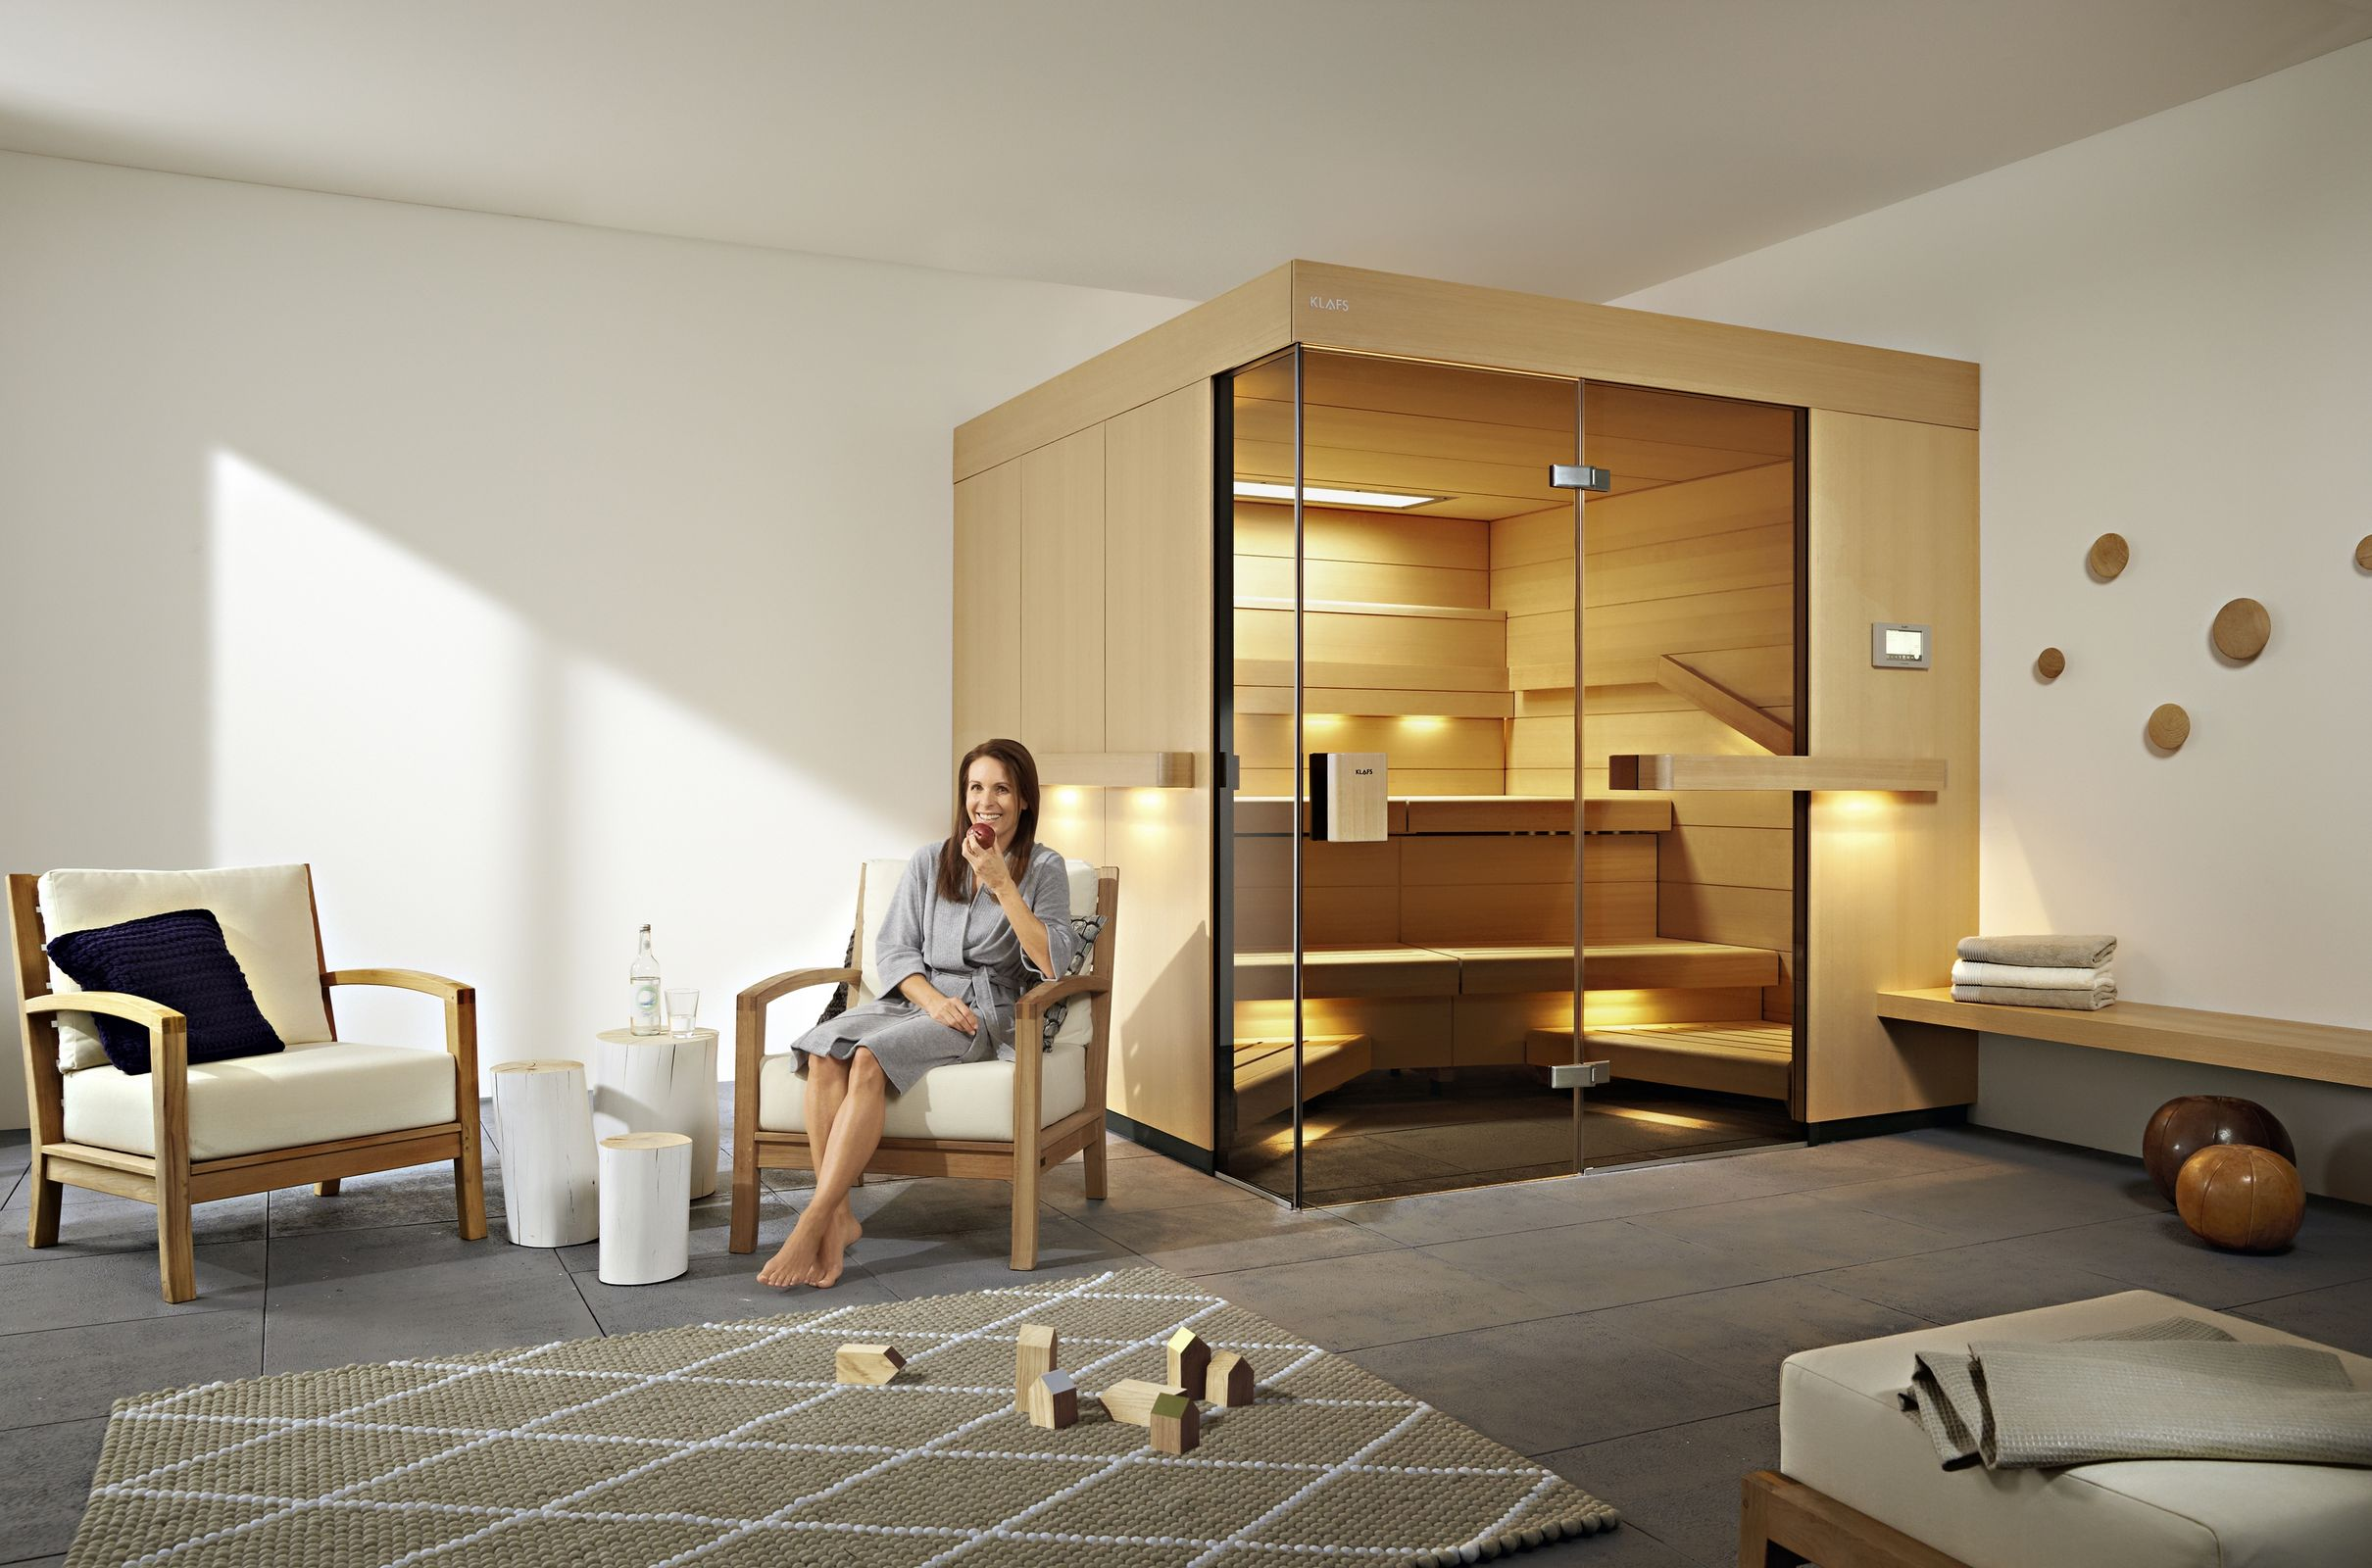 detailseite spa einbau zu hause. Black Bedroom Furniture Sets. Home Design Ideas